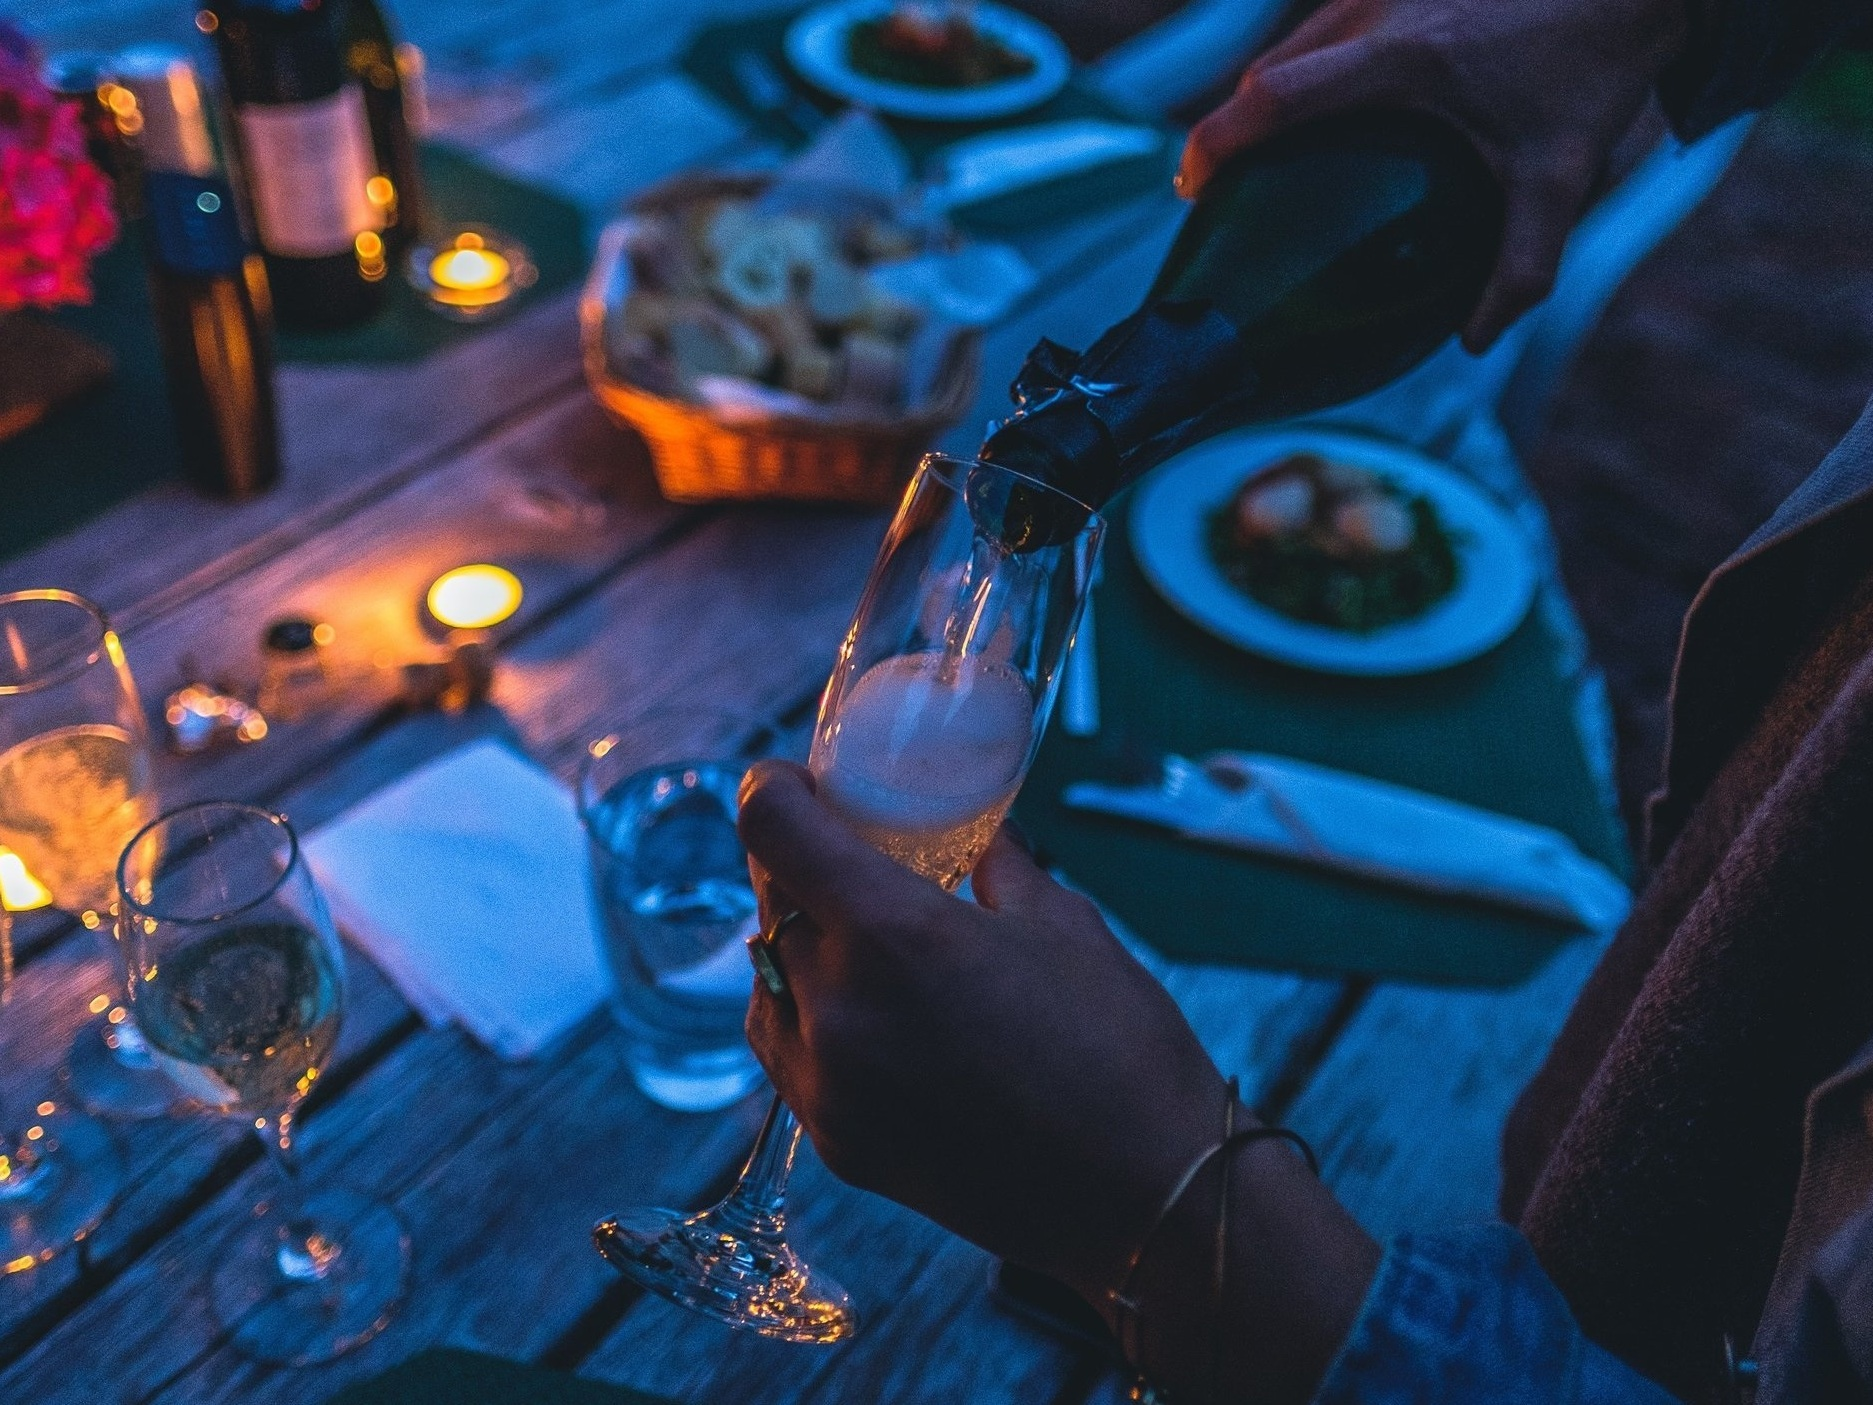 A woman pours wine above a rustic table laid with candles, flowers, and dishes.